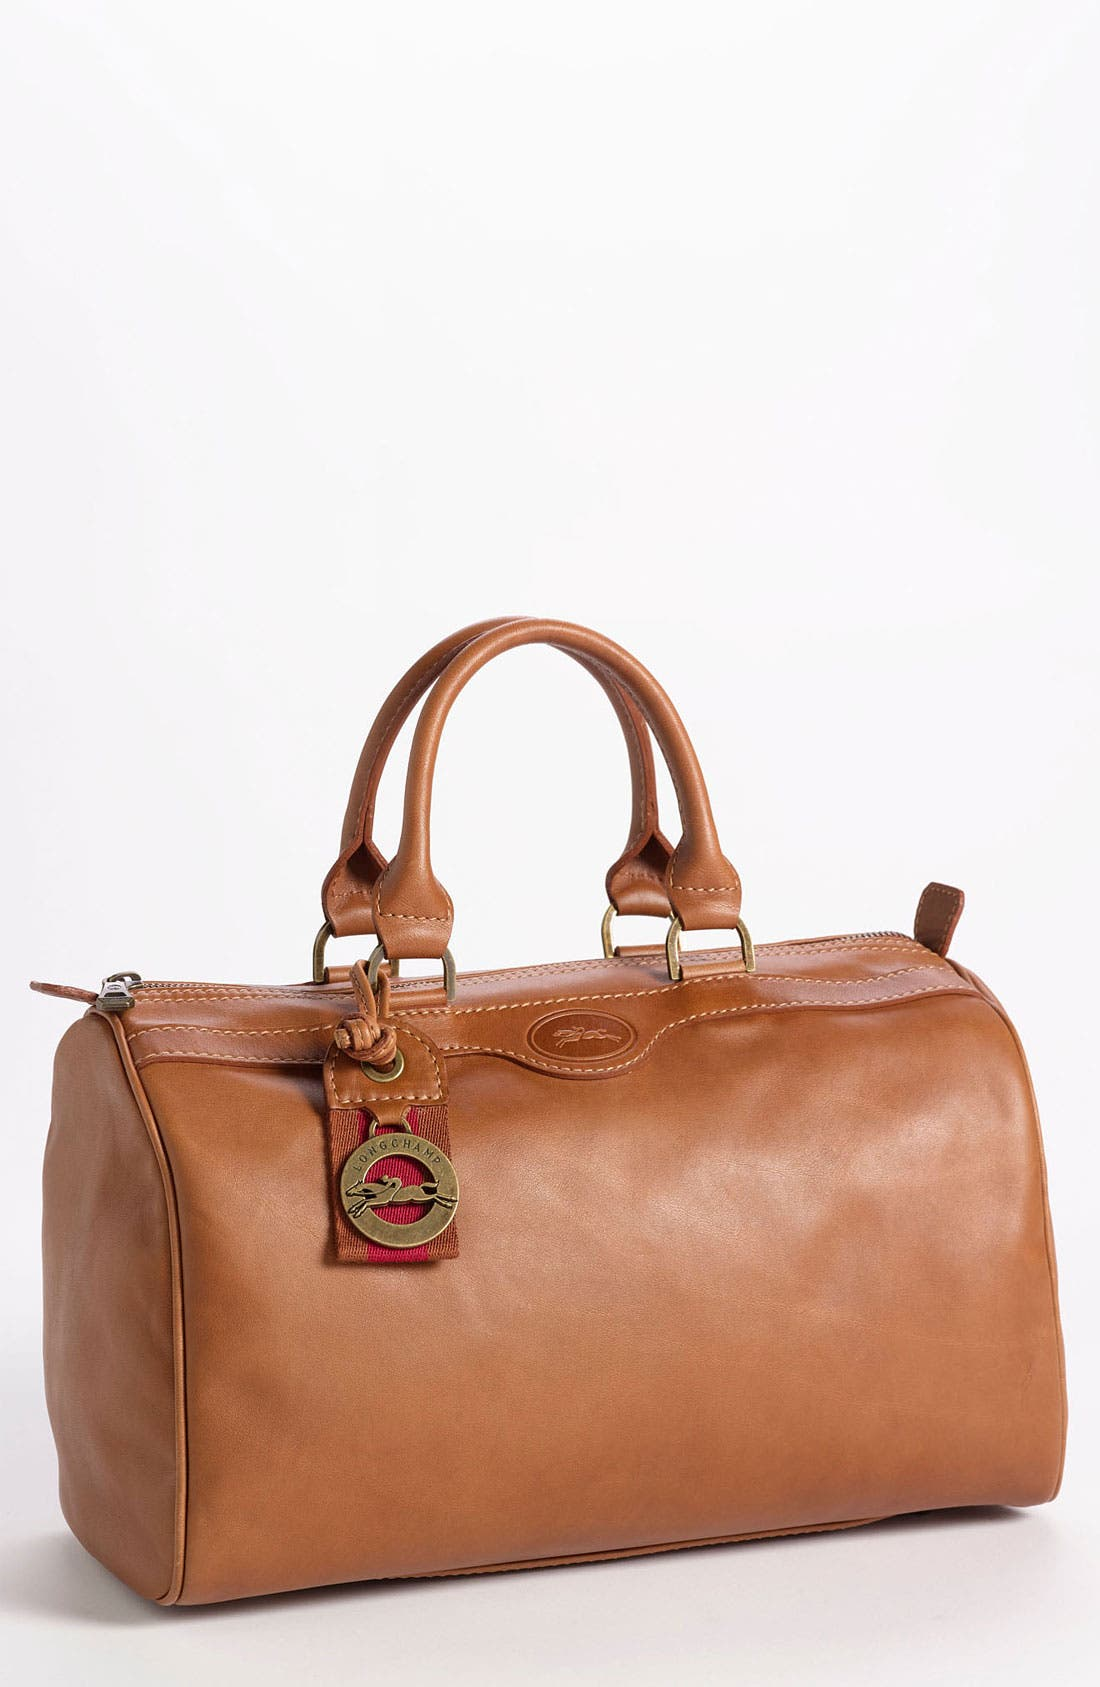 Alternate Image 1 Selected - Longchamp 'Au Sultan' Leather Satchel